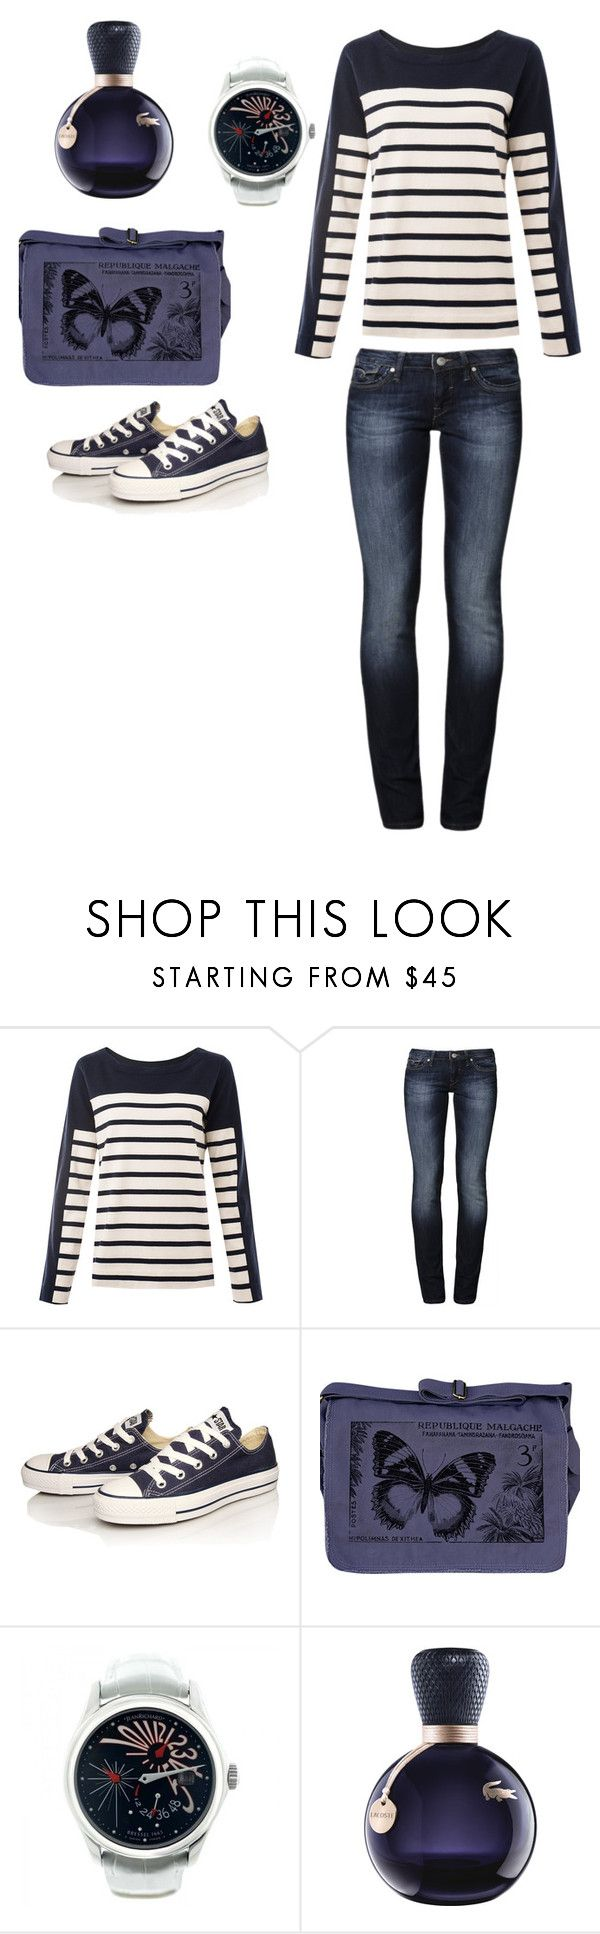 """""""Bleu de Bleu..."""" by lalynany ❤ liked on Polyvore featuring MiH Jeans, Mavi, Converse, Crawlspace Studios, JeanRichard and Lacoste"""